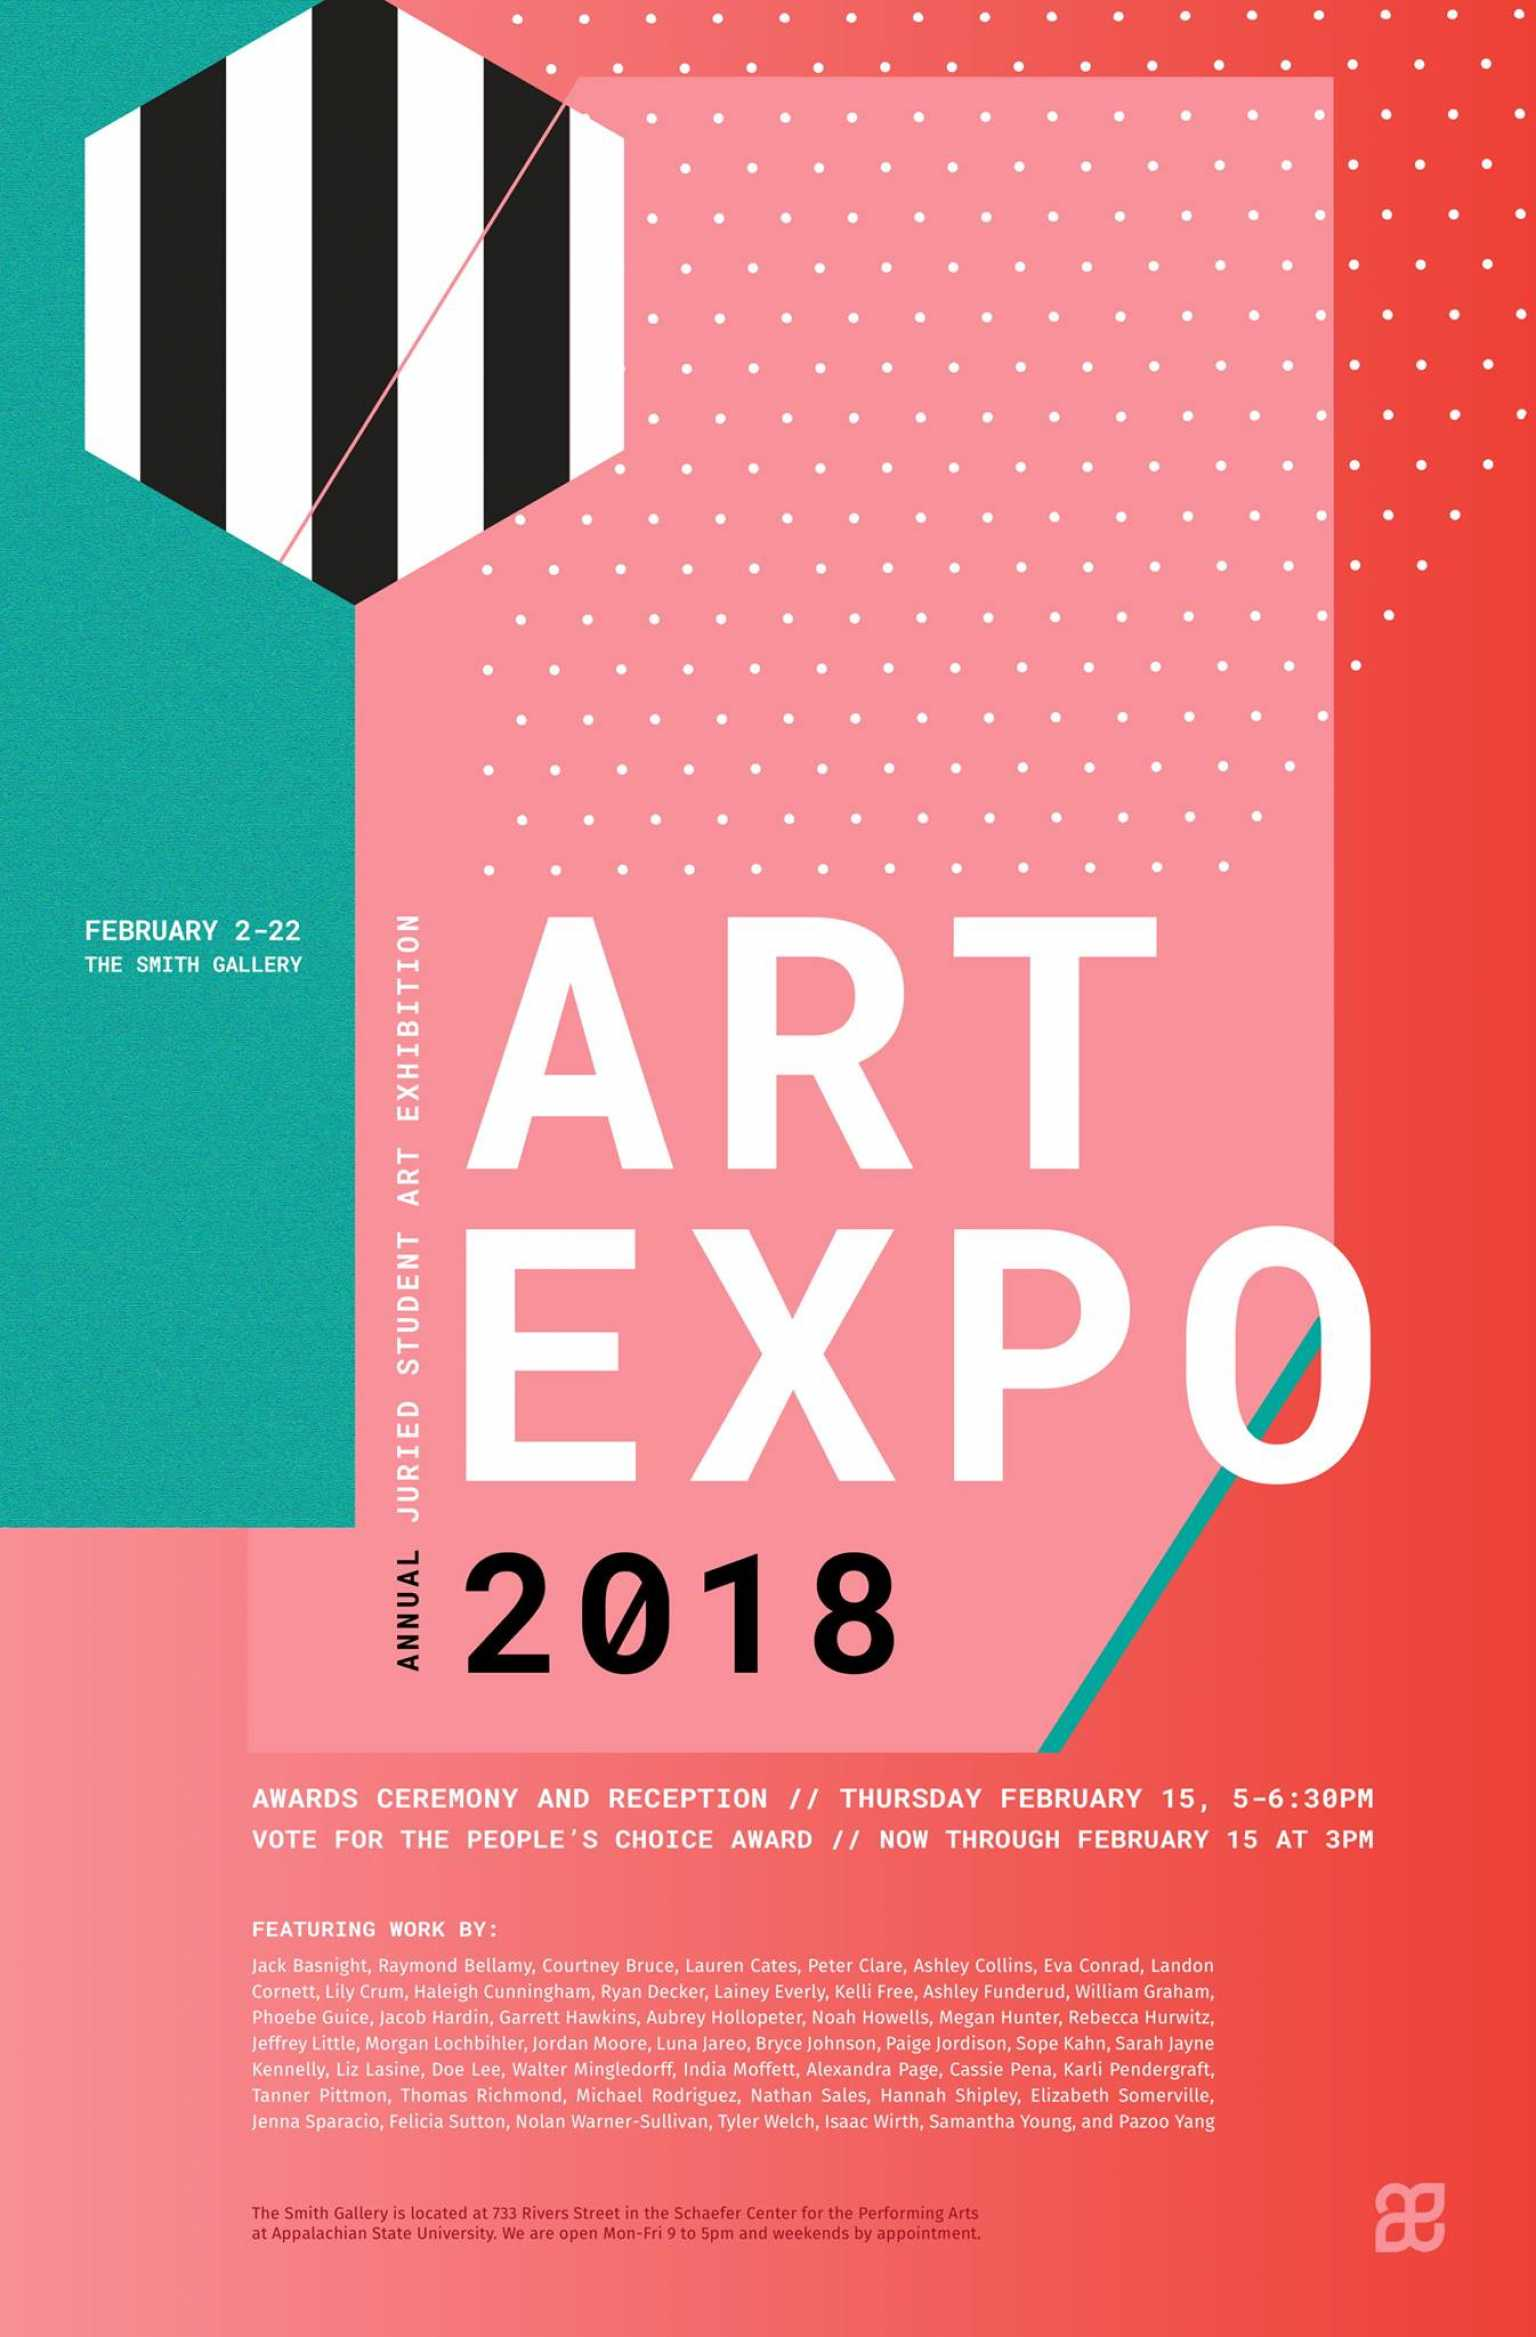 Art expo poster